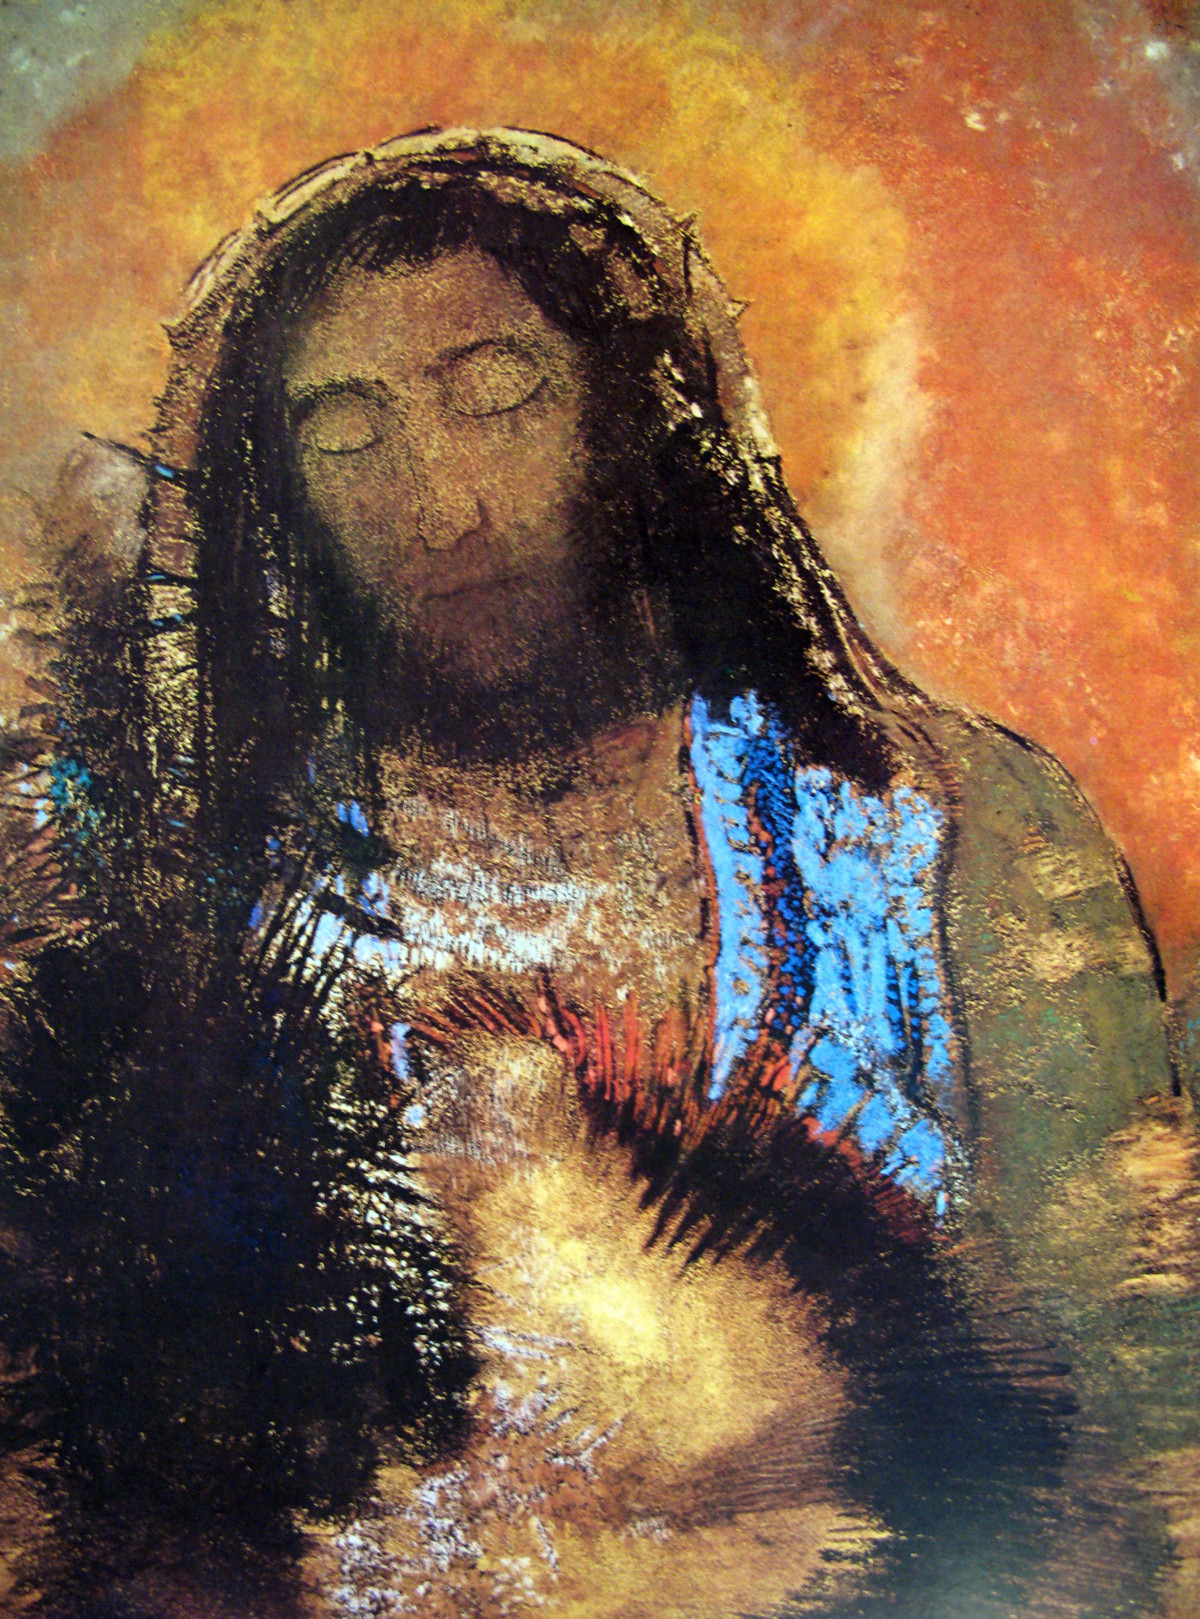 Sacred Heart by Odilon Redonn Musée d'Orsay, Paris, France